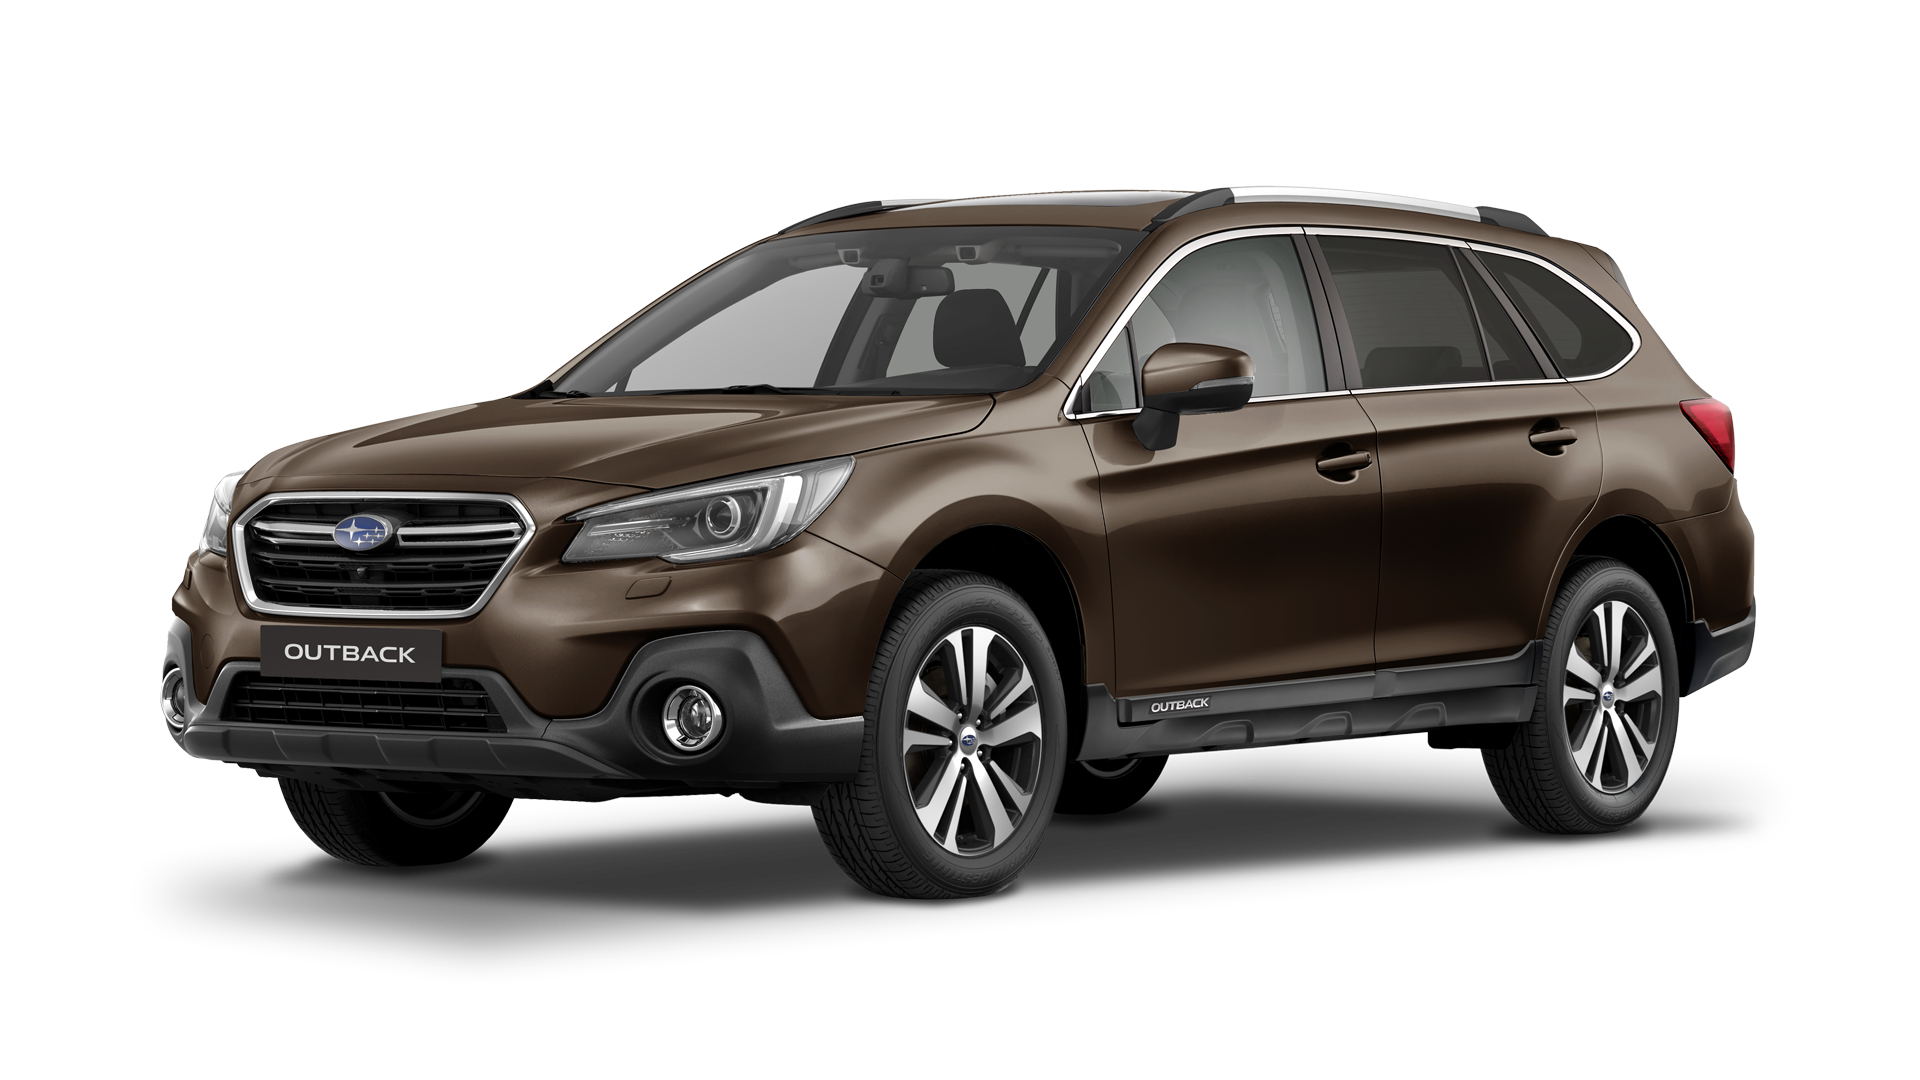 76 Best Subaru Xv Turbo 2019 Images